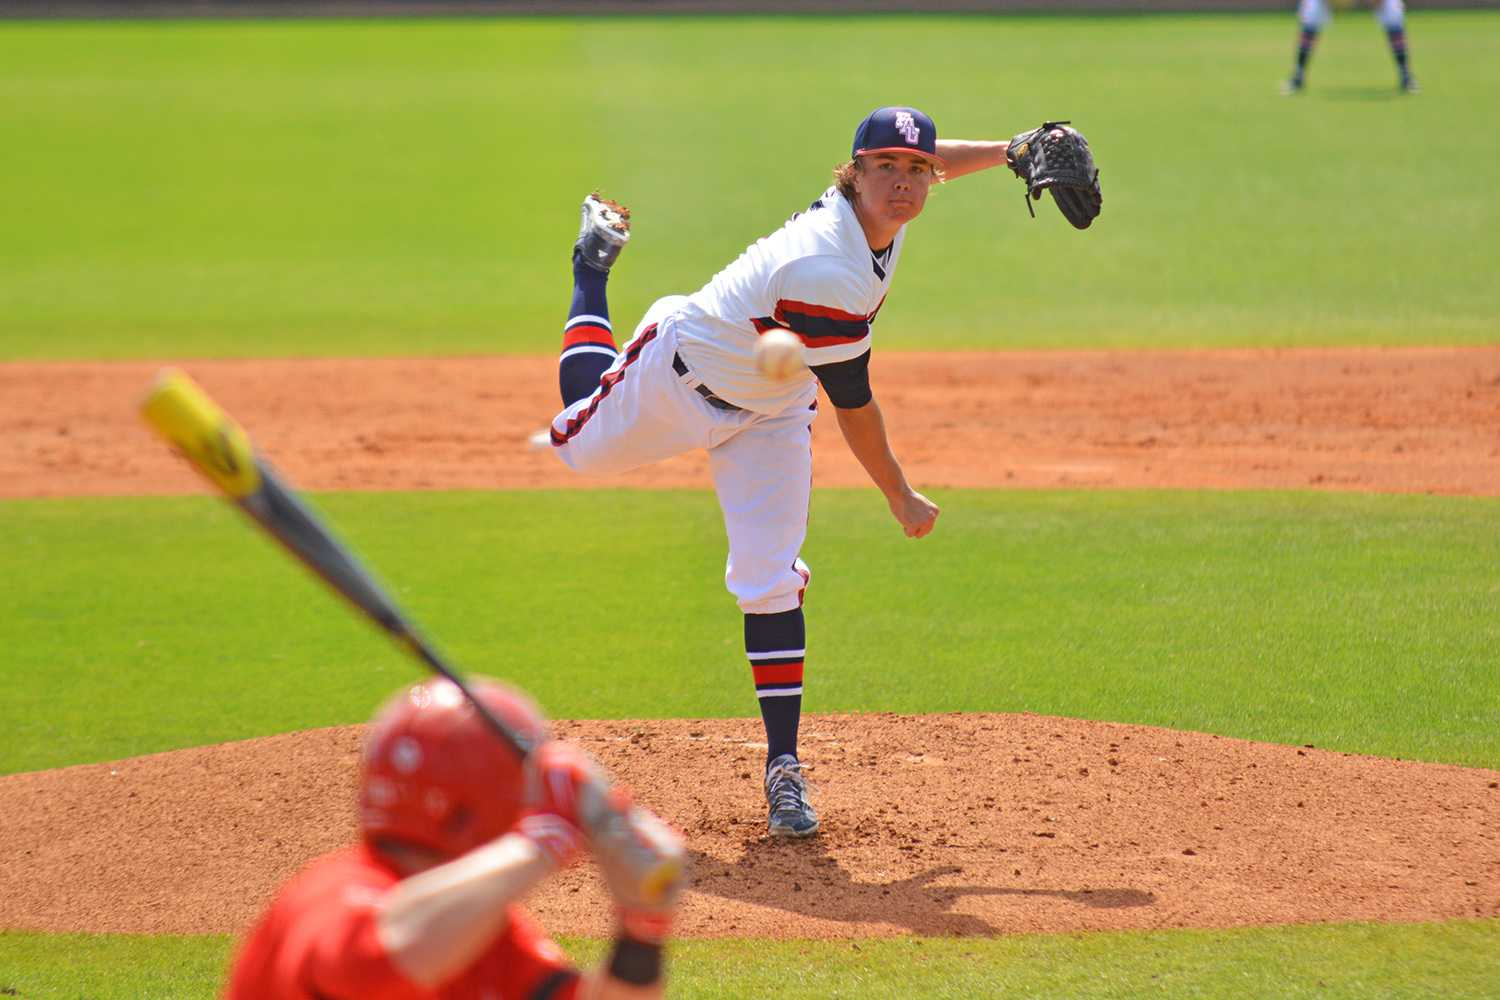 Sunday's starting pitcher Robbie Coursel threw a no-hitter until the 5th inning to set the Owls up for their 2-1 victory.